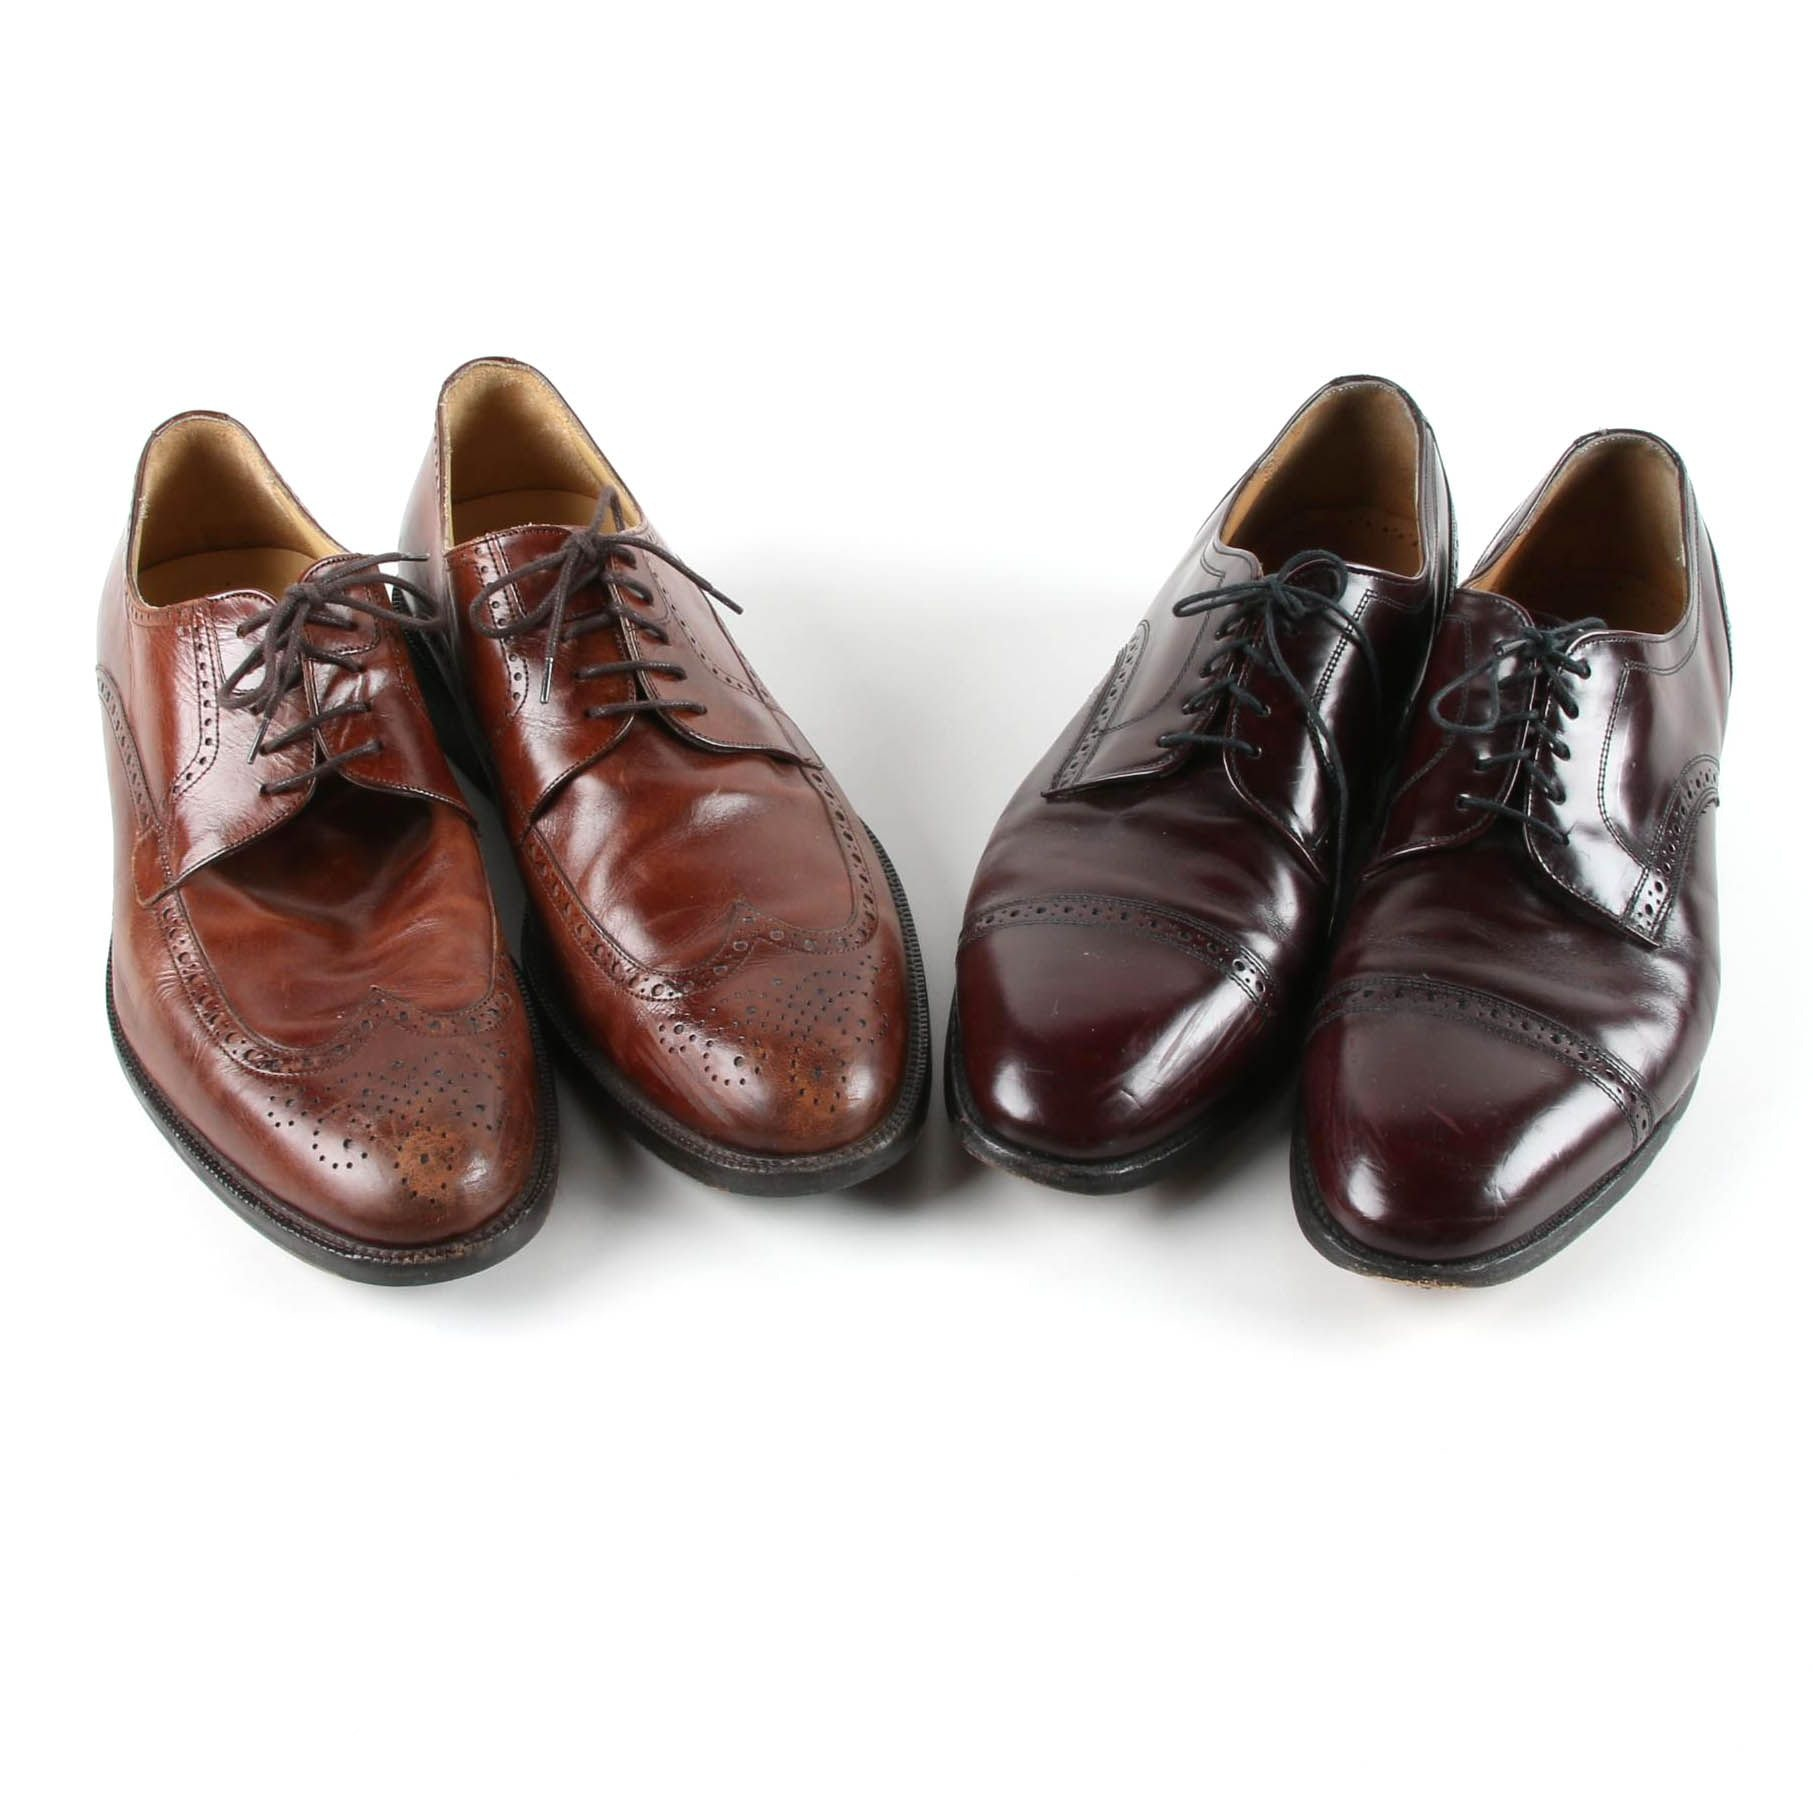 Men's Johnston & Murphy Brown Leather Wingtip and Cap-Toe Oxfords